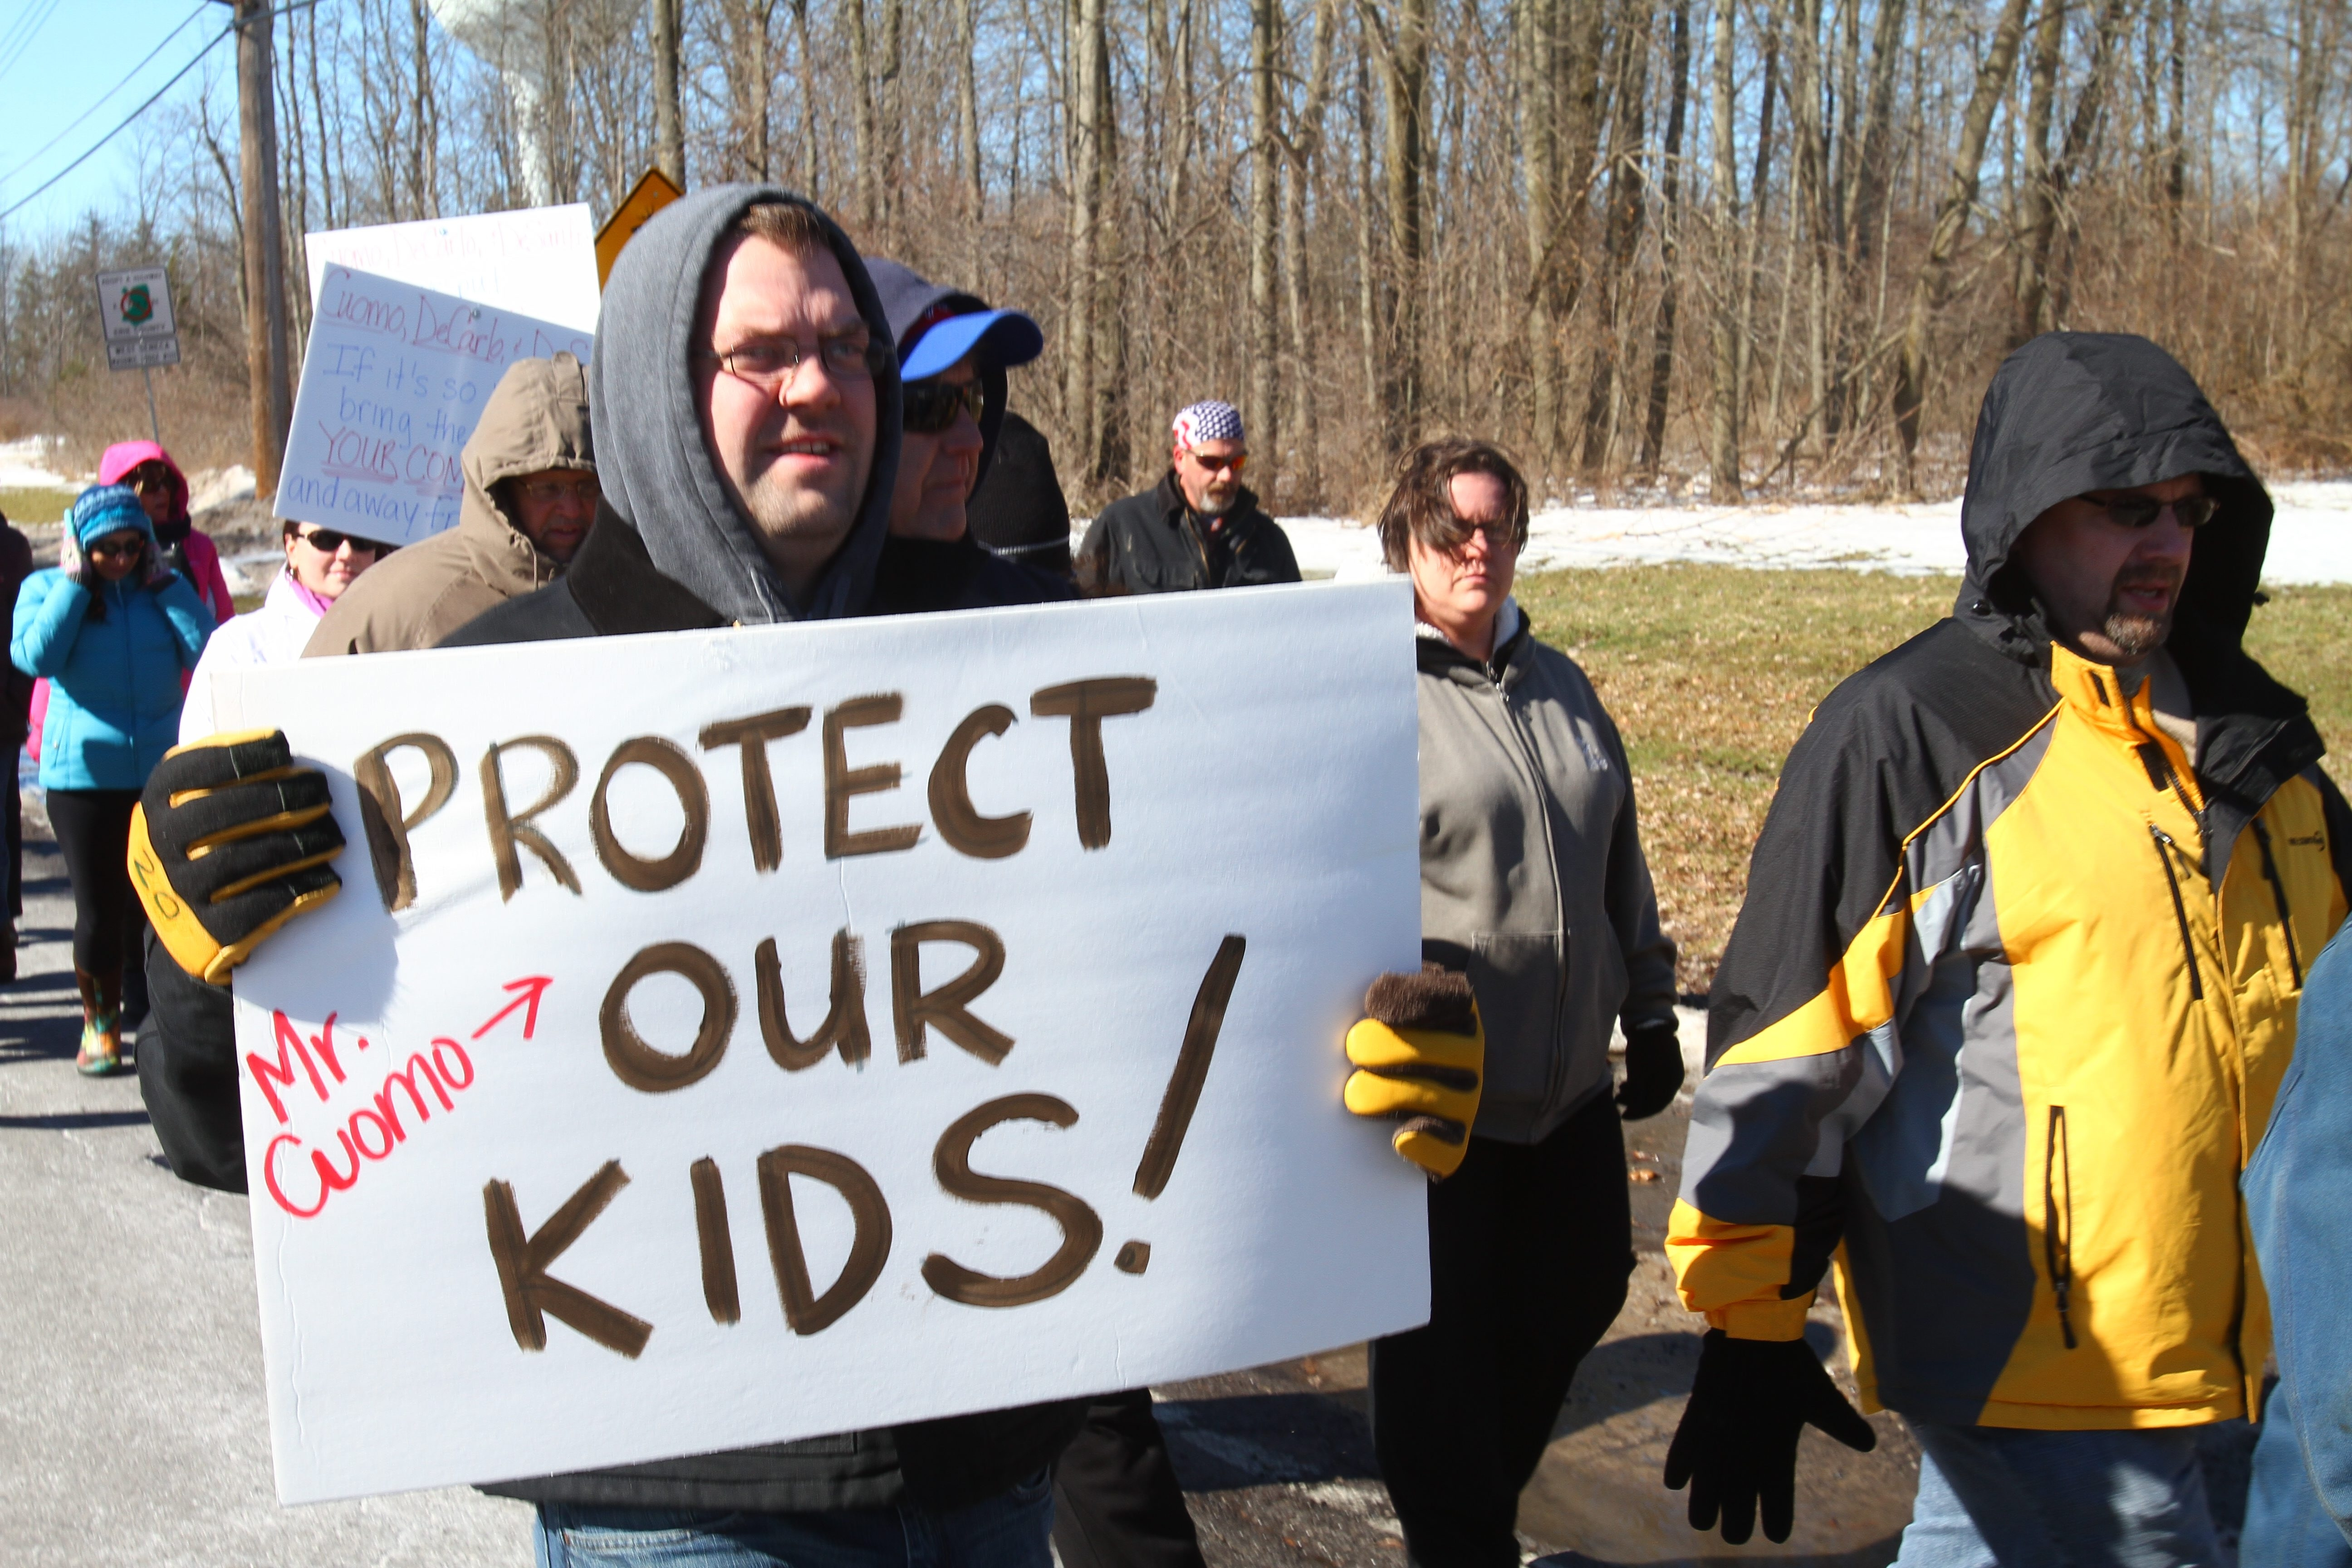 Residents march on Leydecker Road, West Seneca, in protest of sex offenders housed at group homes in the neighborhood. (John Hickey / Buffalo News)